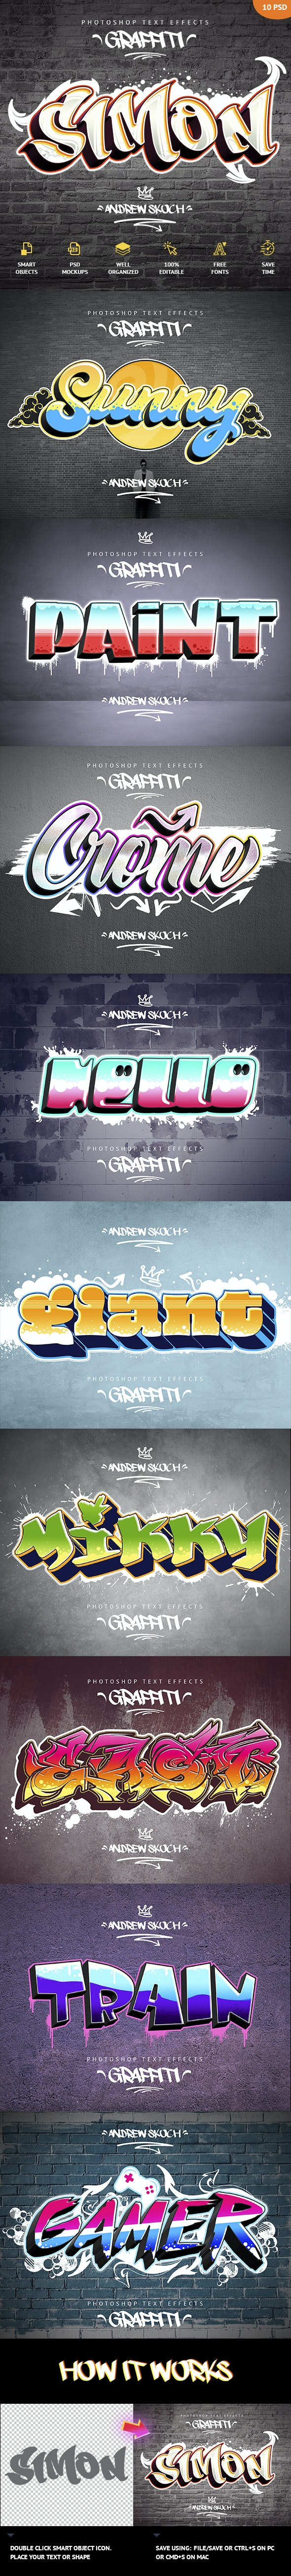 Graffiti Text Effects - 10 PSD - vol 1 - Text Effects Actions